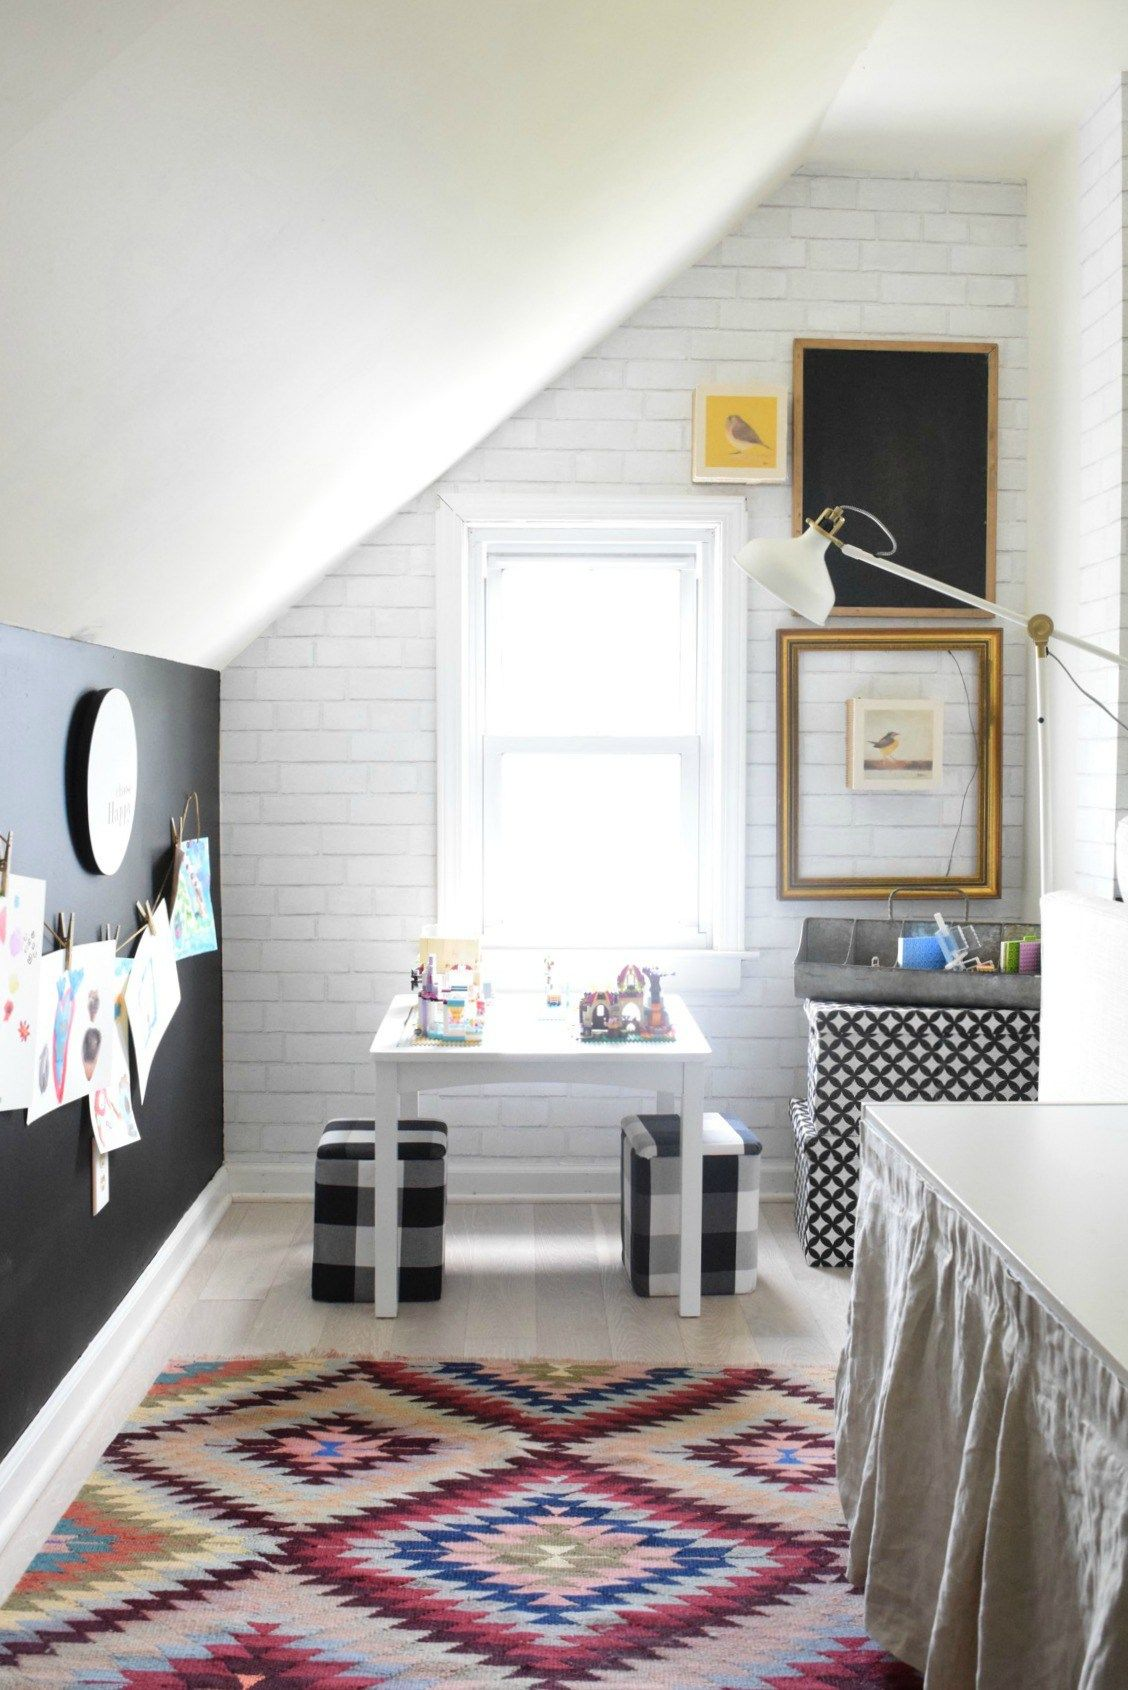 Family Room with Wallpaper and Chalkboard Wall Home Decor Ideas 1128x1690